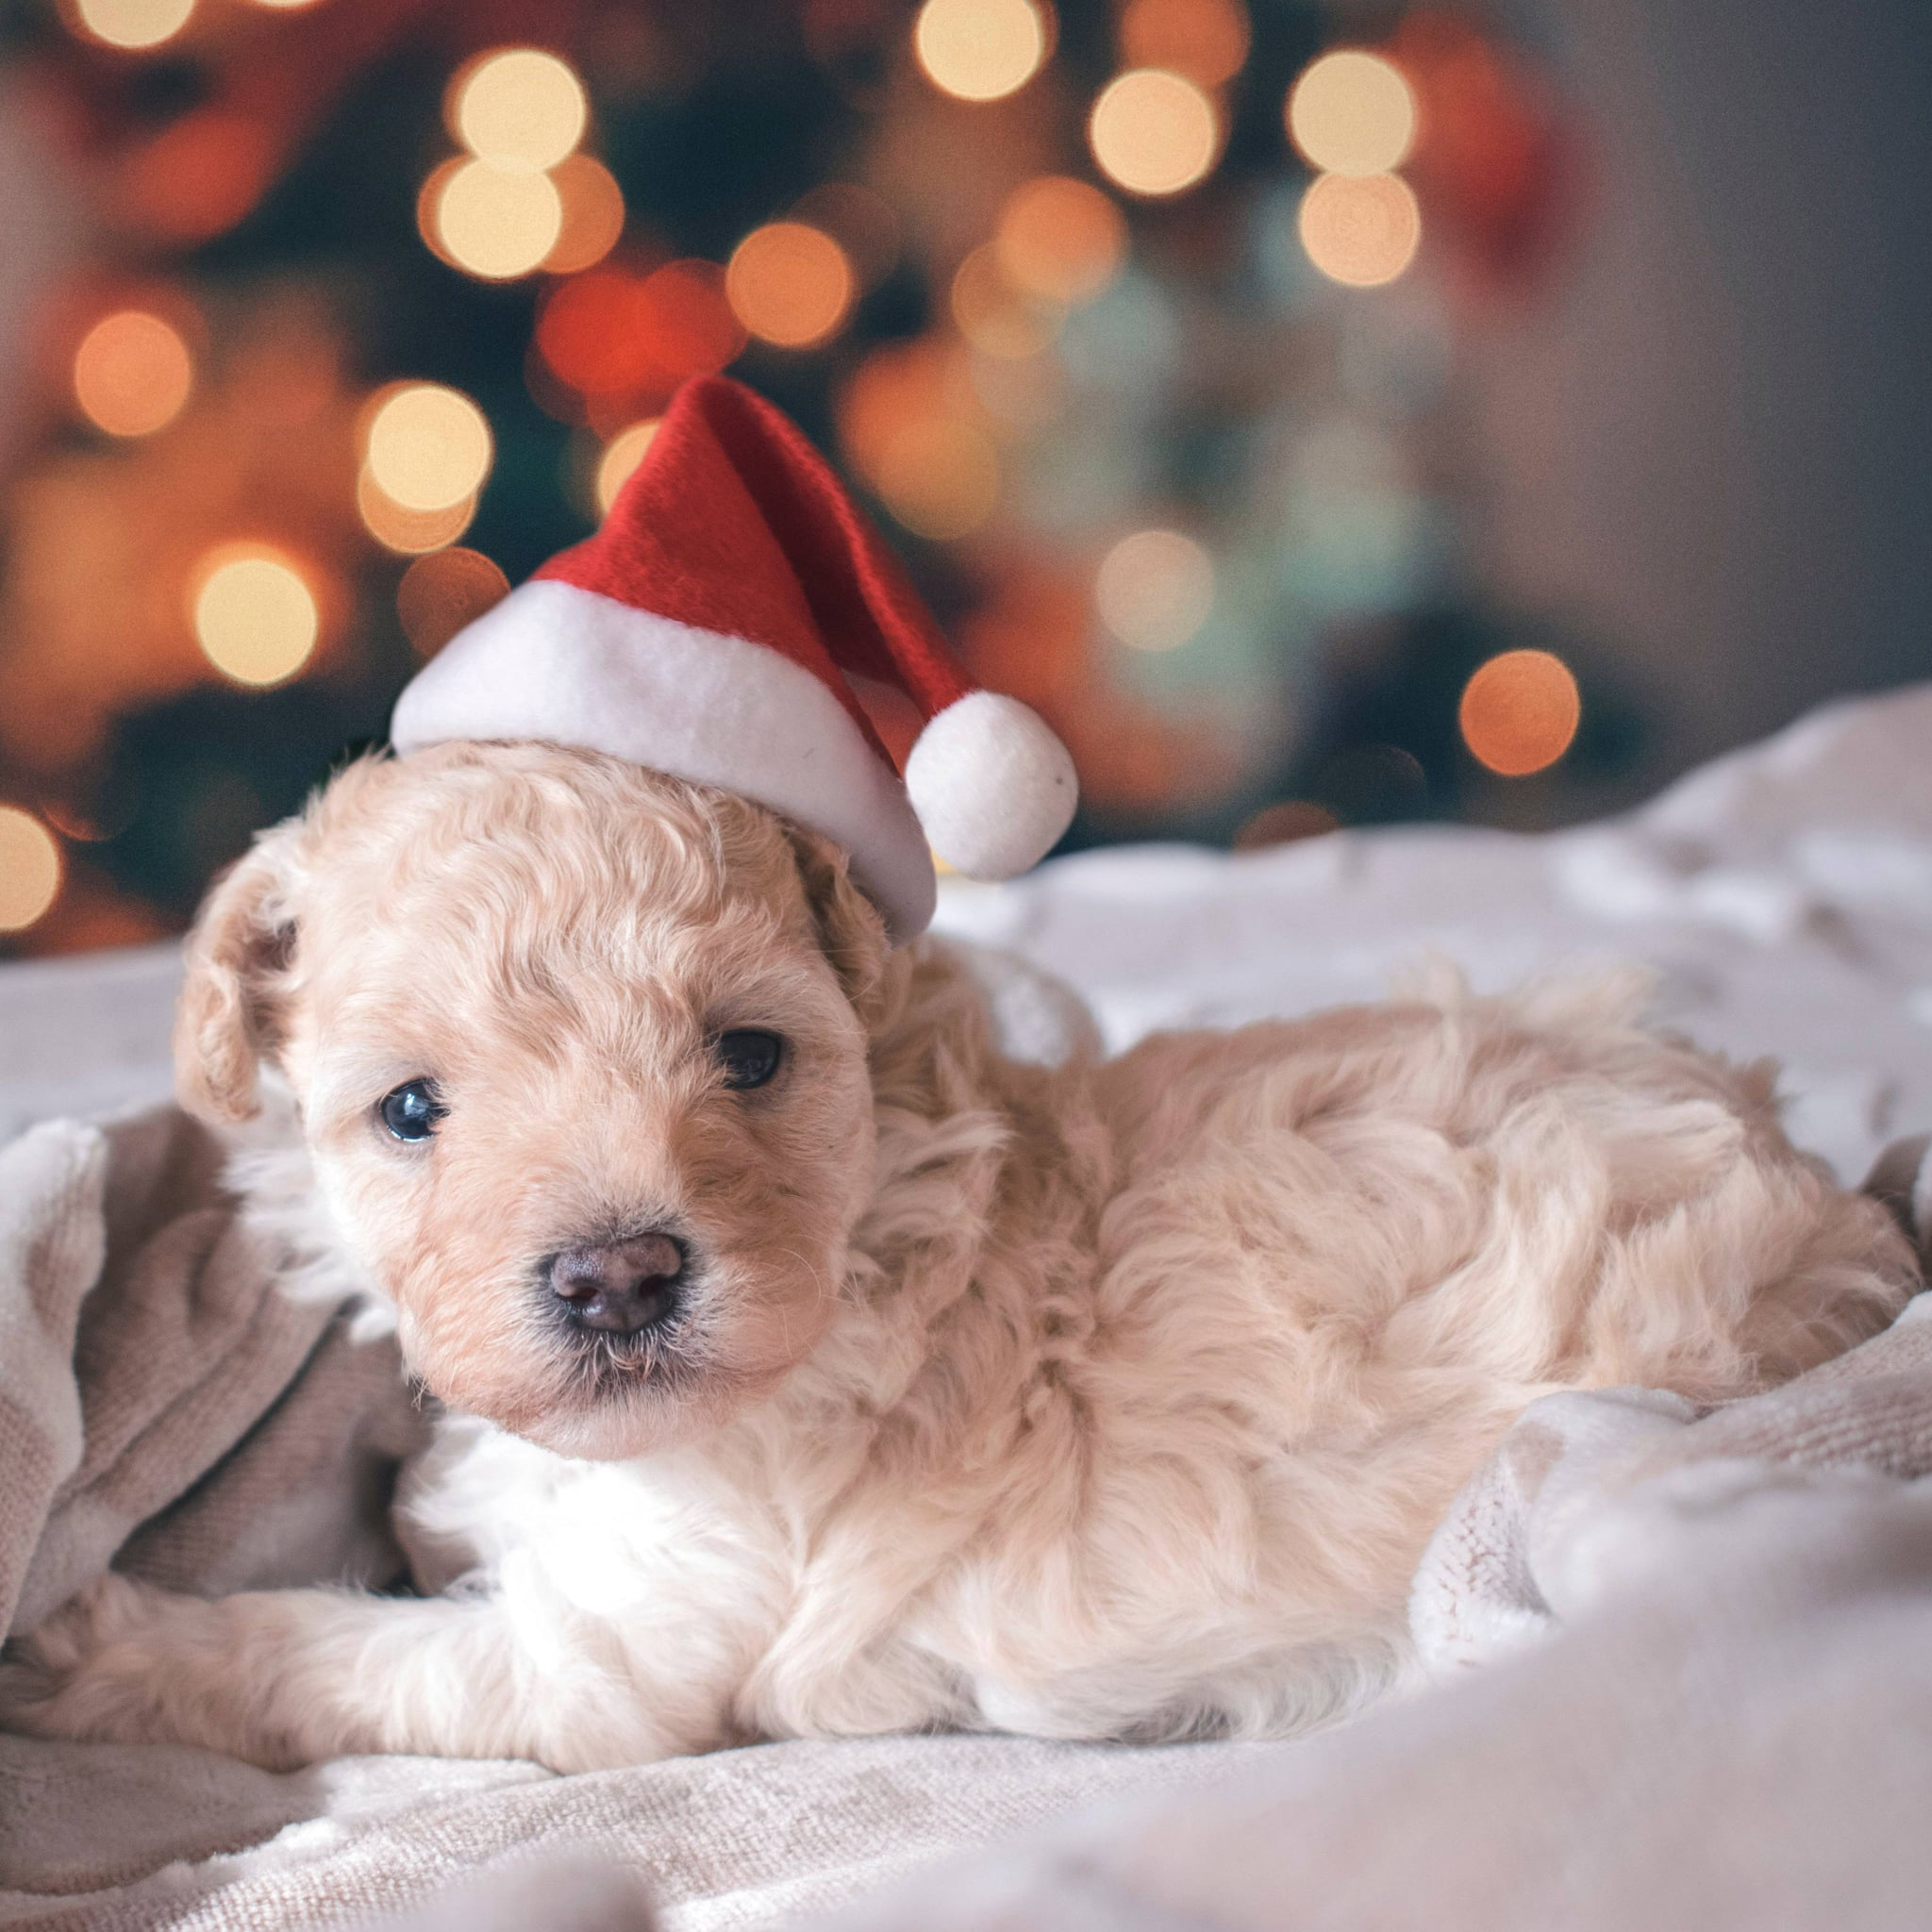 A Puppy For Christmas.Why You Shouldn T Give Kids A Puppy For Christmas Popsugar